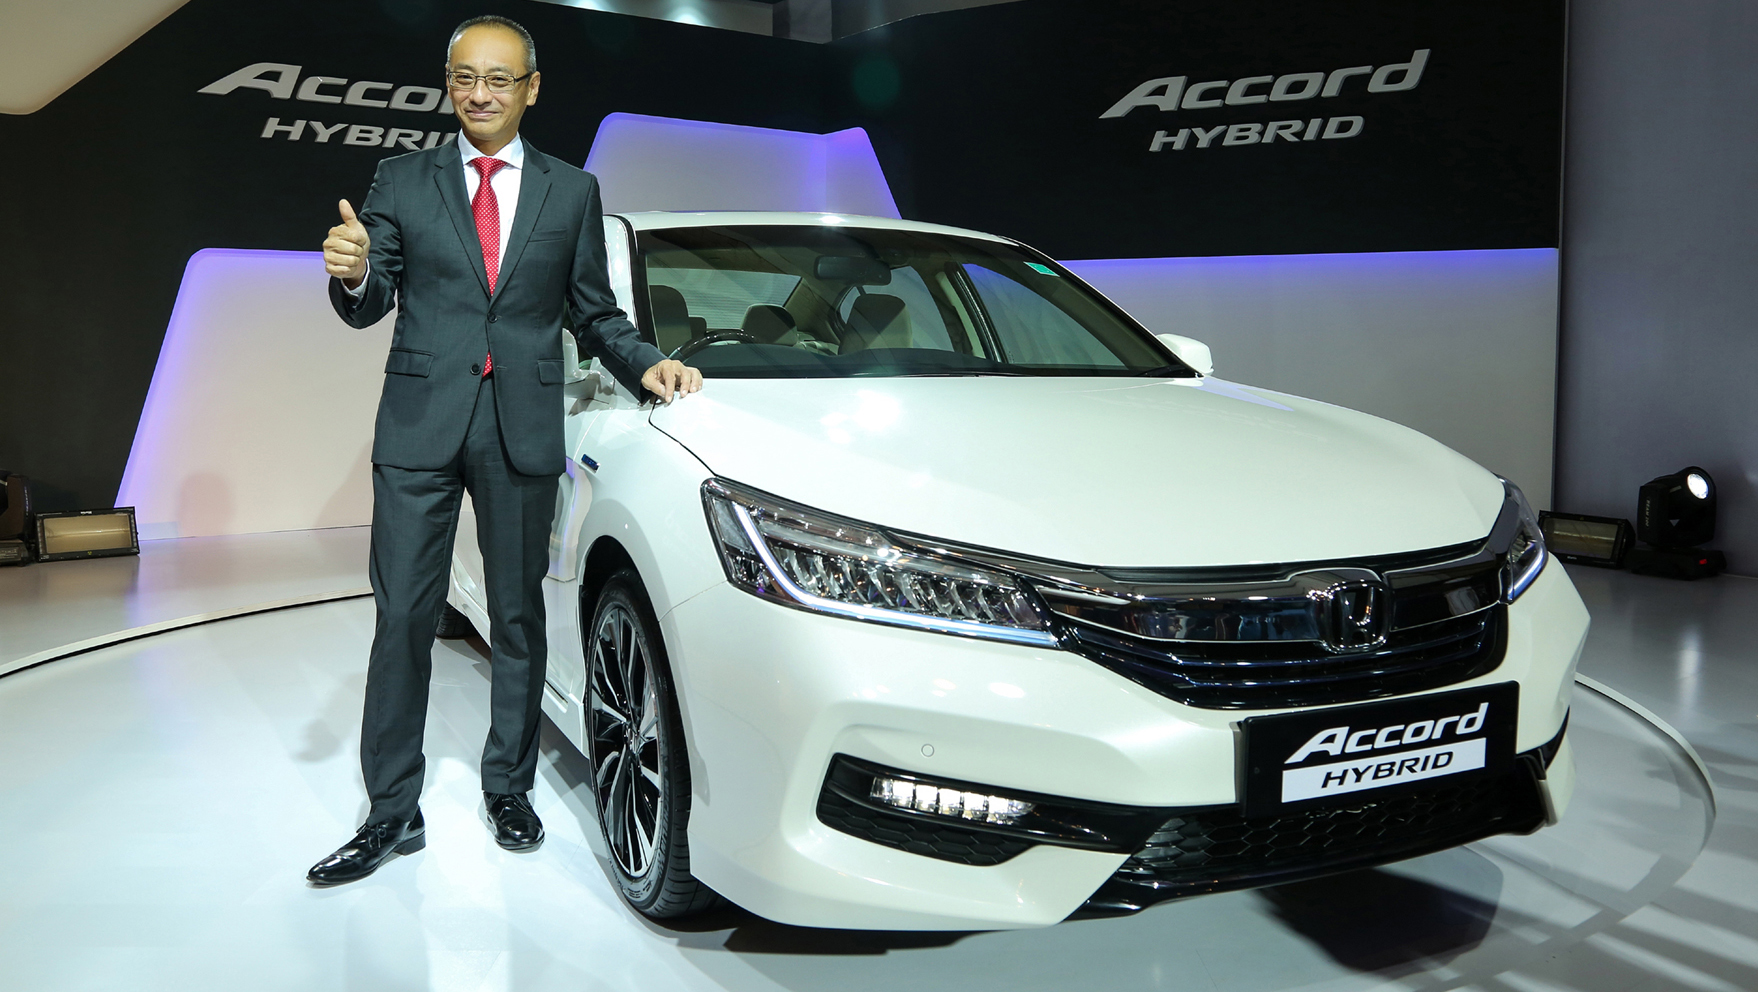 india bound honda accord hybrid unveiled in thailand. Black Bedroom Furniture Sets. Home Design Ideas